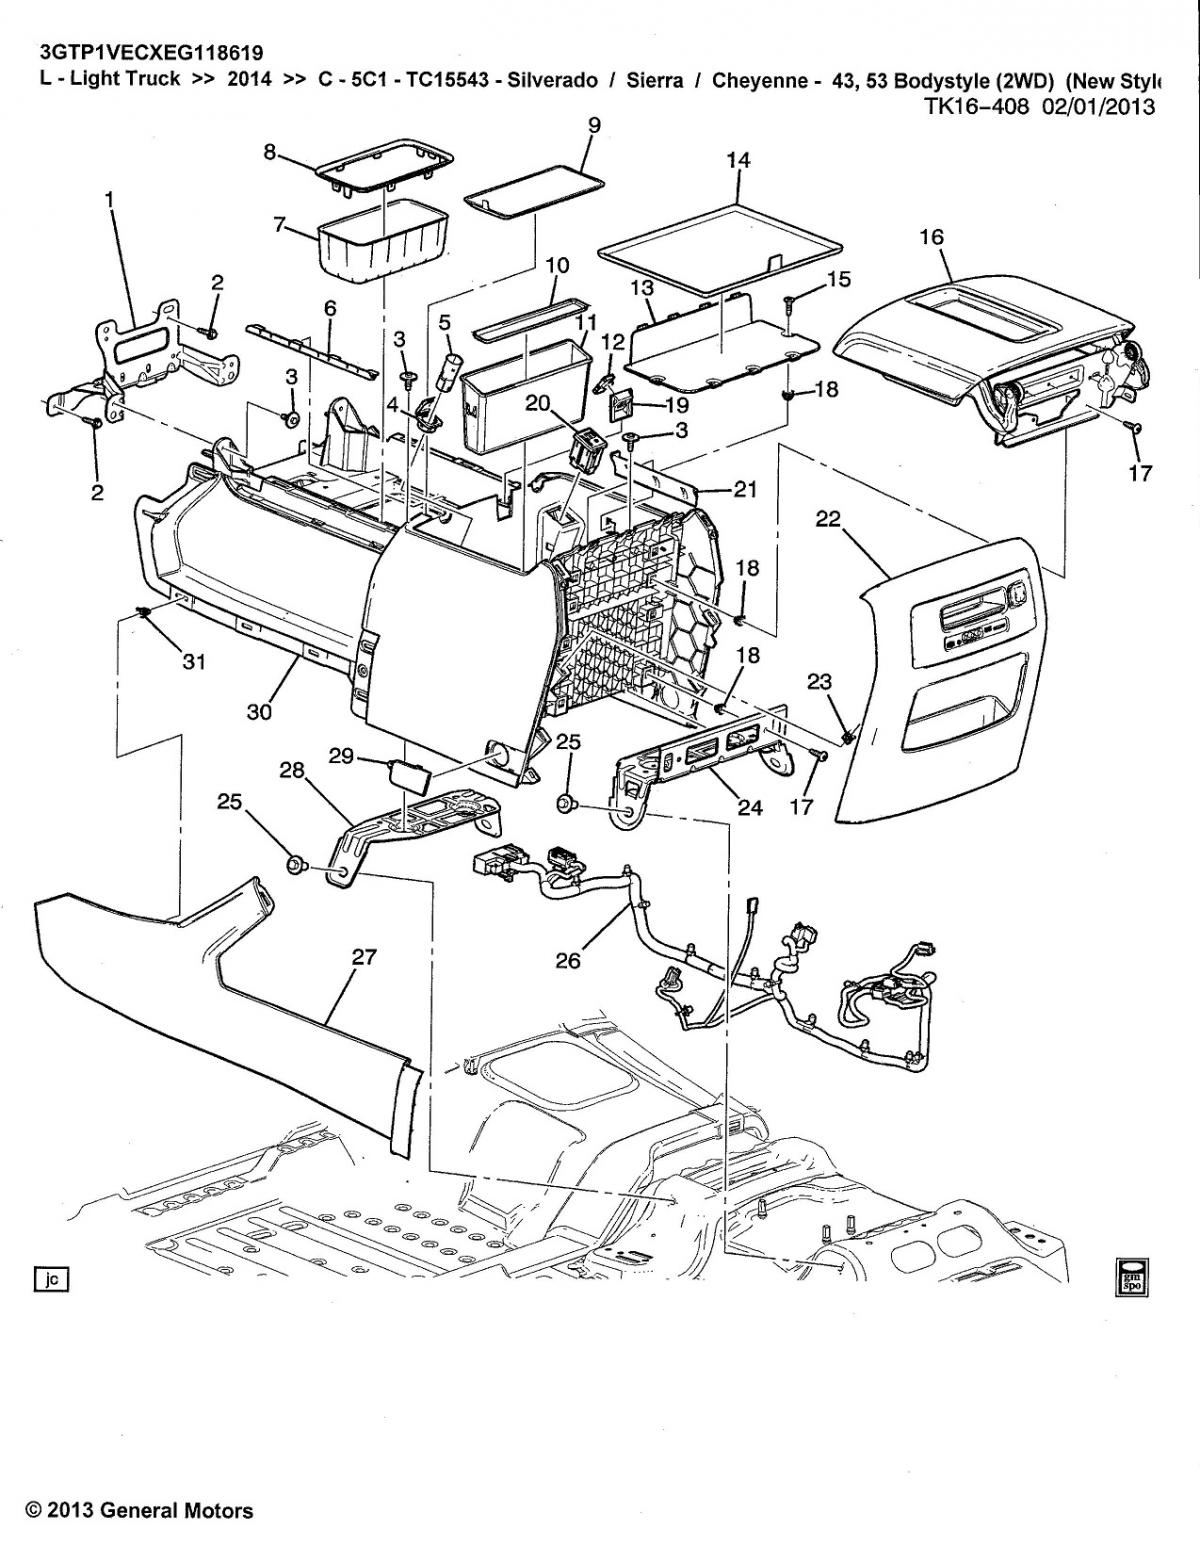 Bose Amp Assy 8800 Instructions